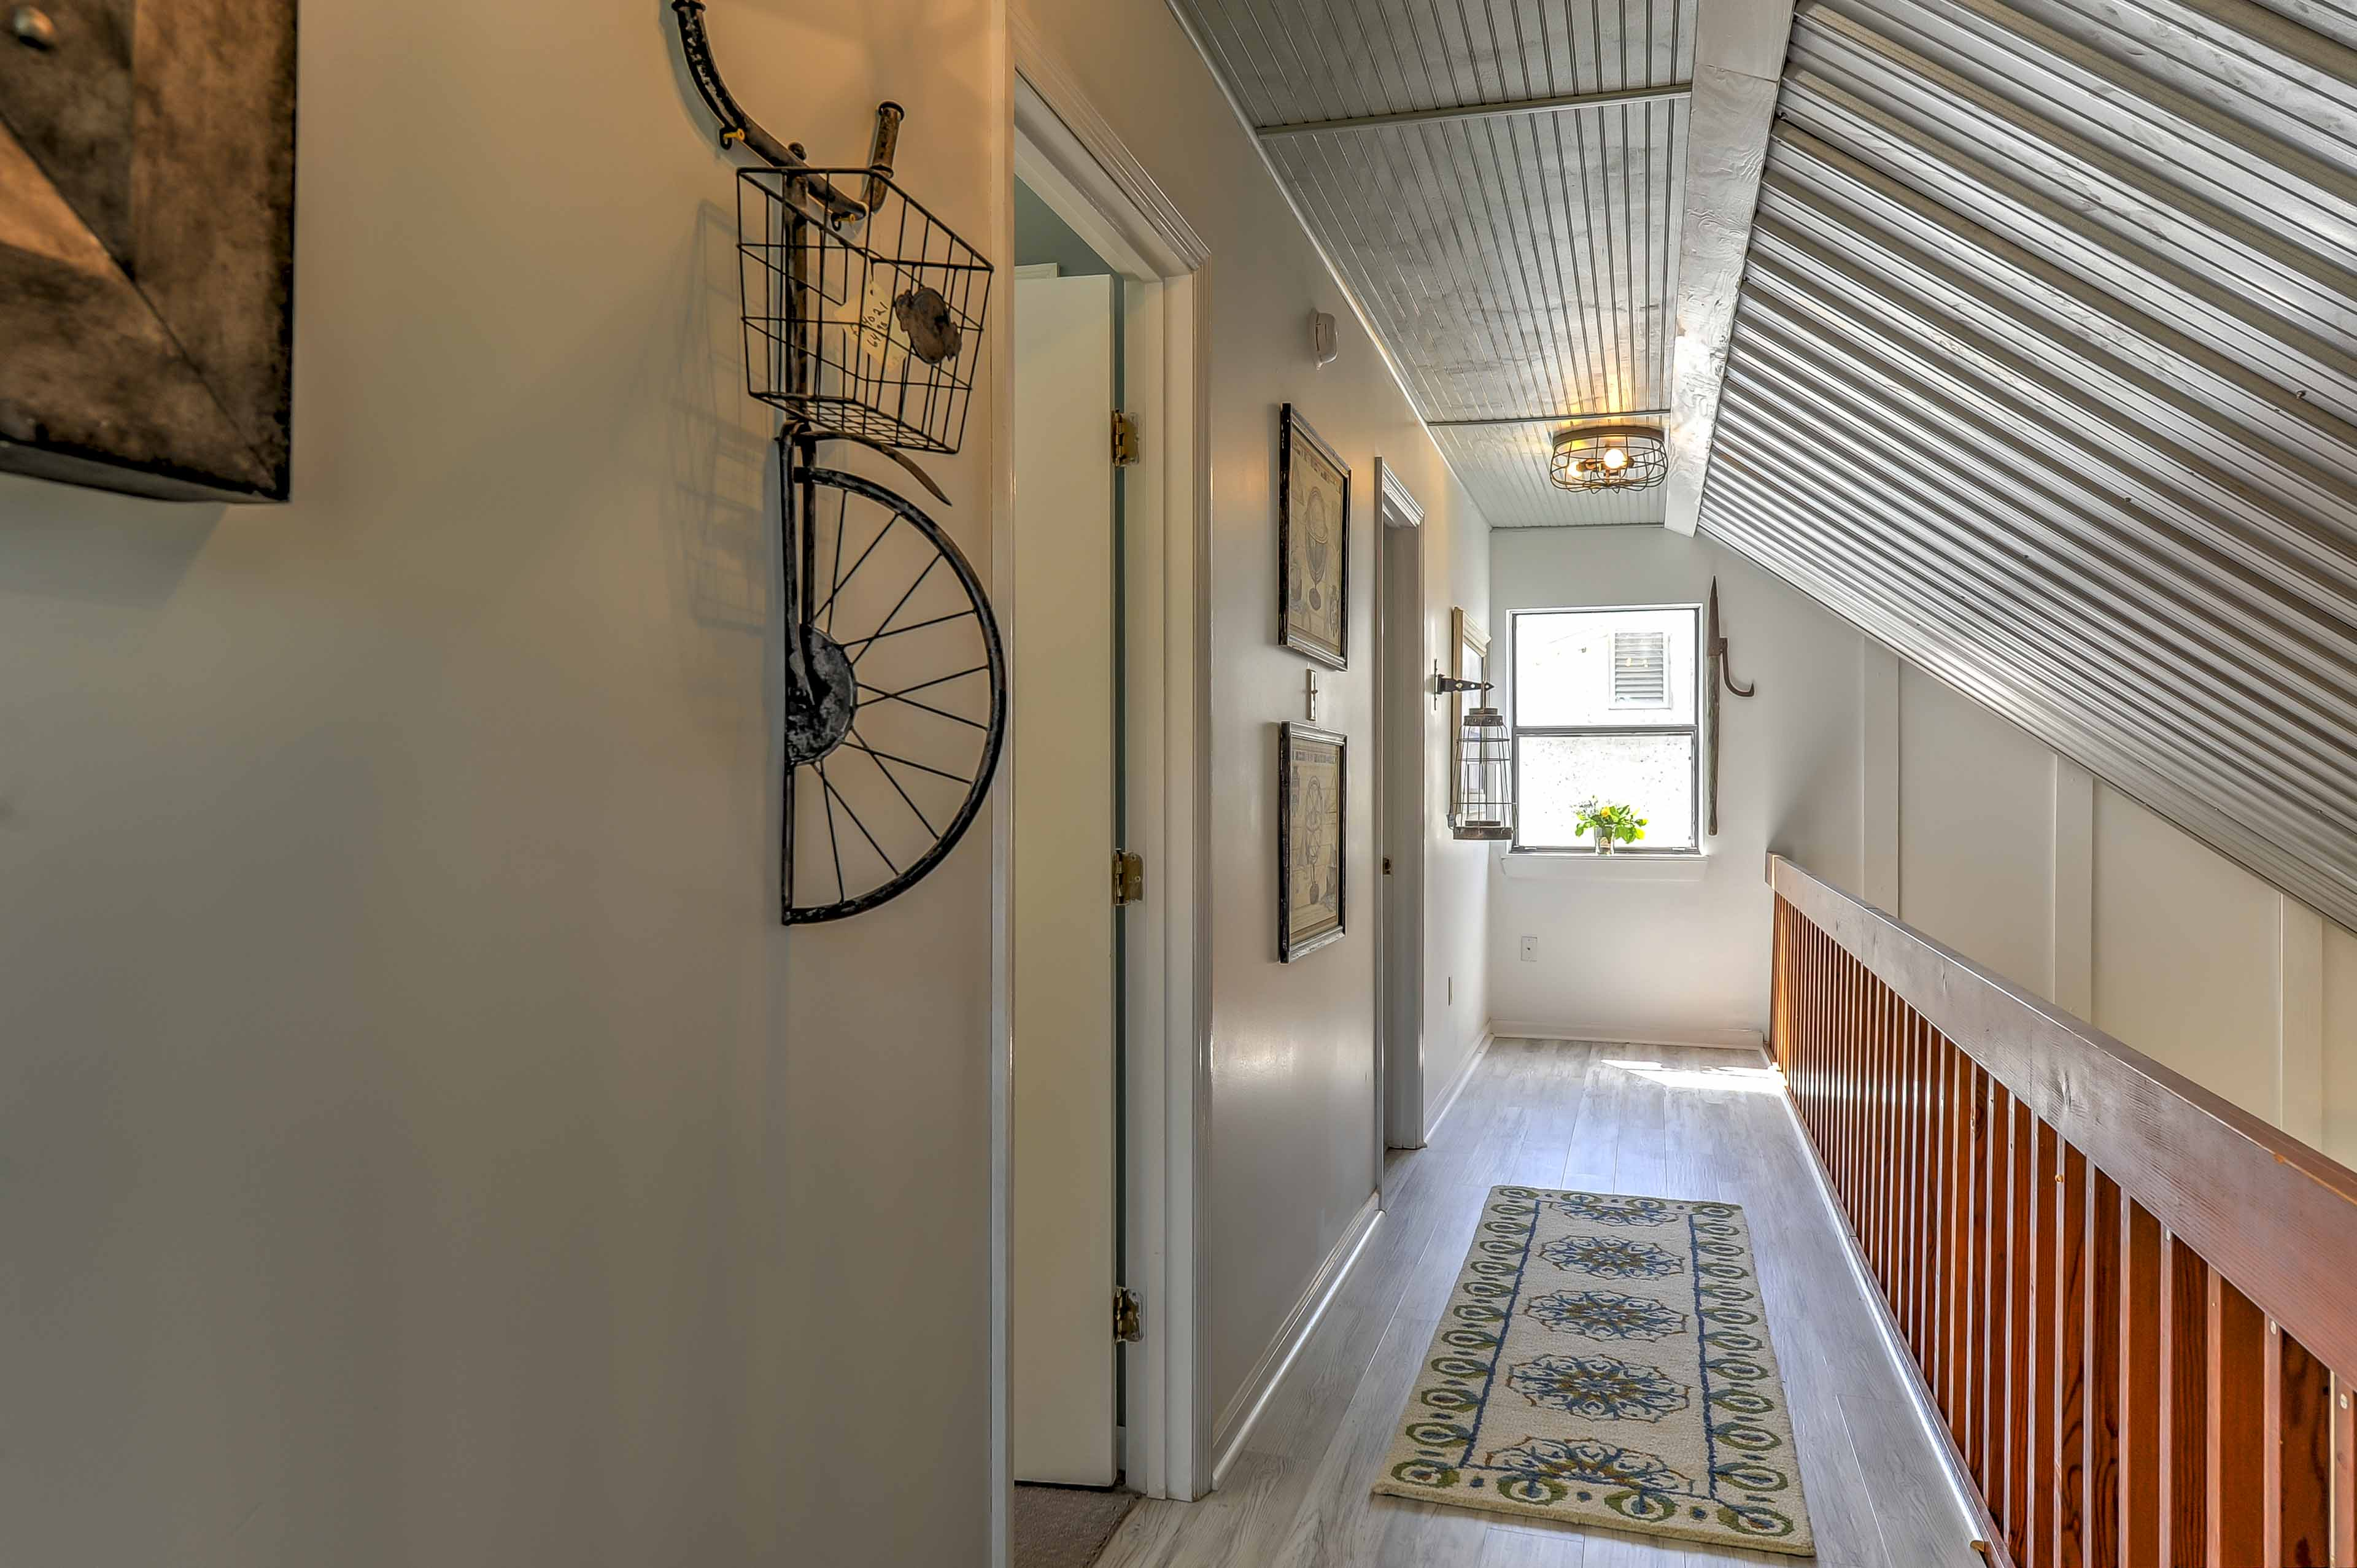 Head upstairs to access the other 2 bedrooms.